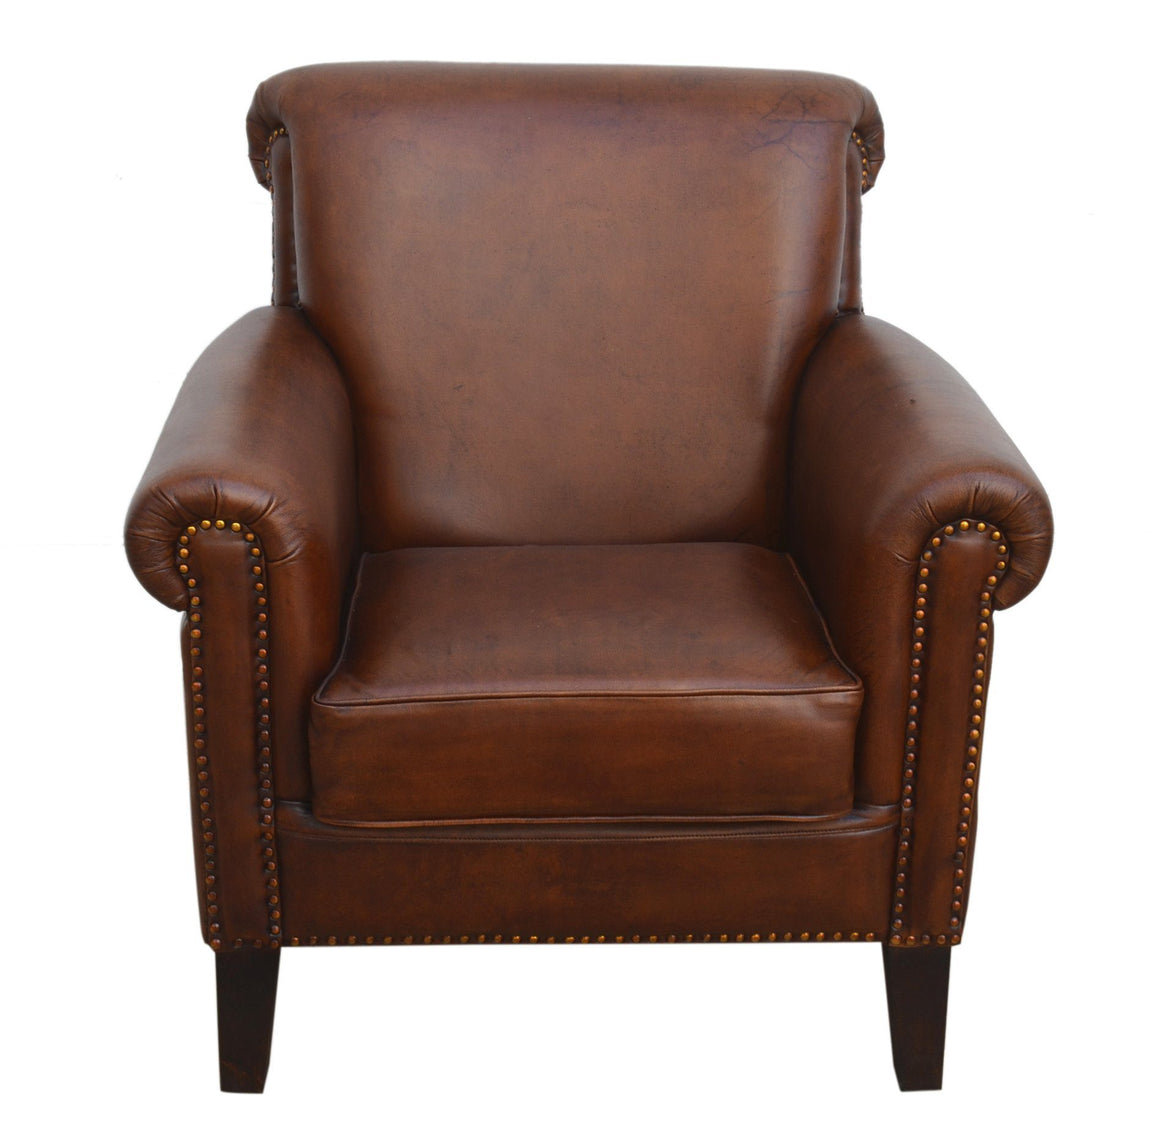 DISTRESSED RICH BROWN LEATHER ARMCHAIR Philbee Interiors